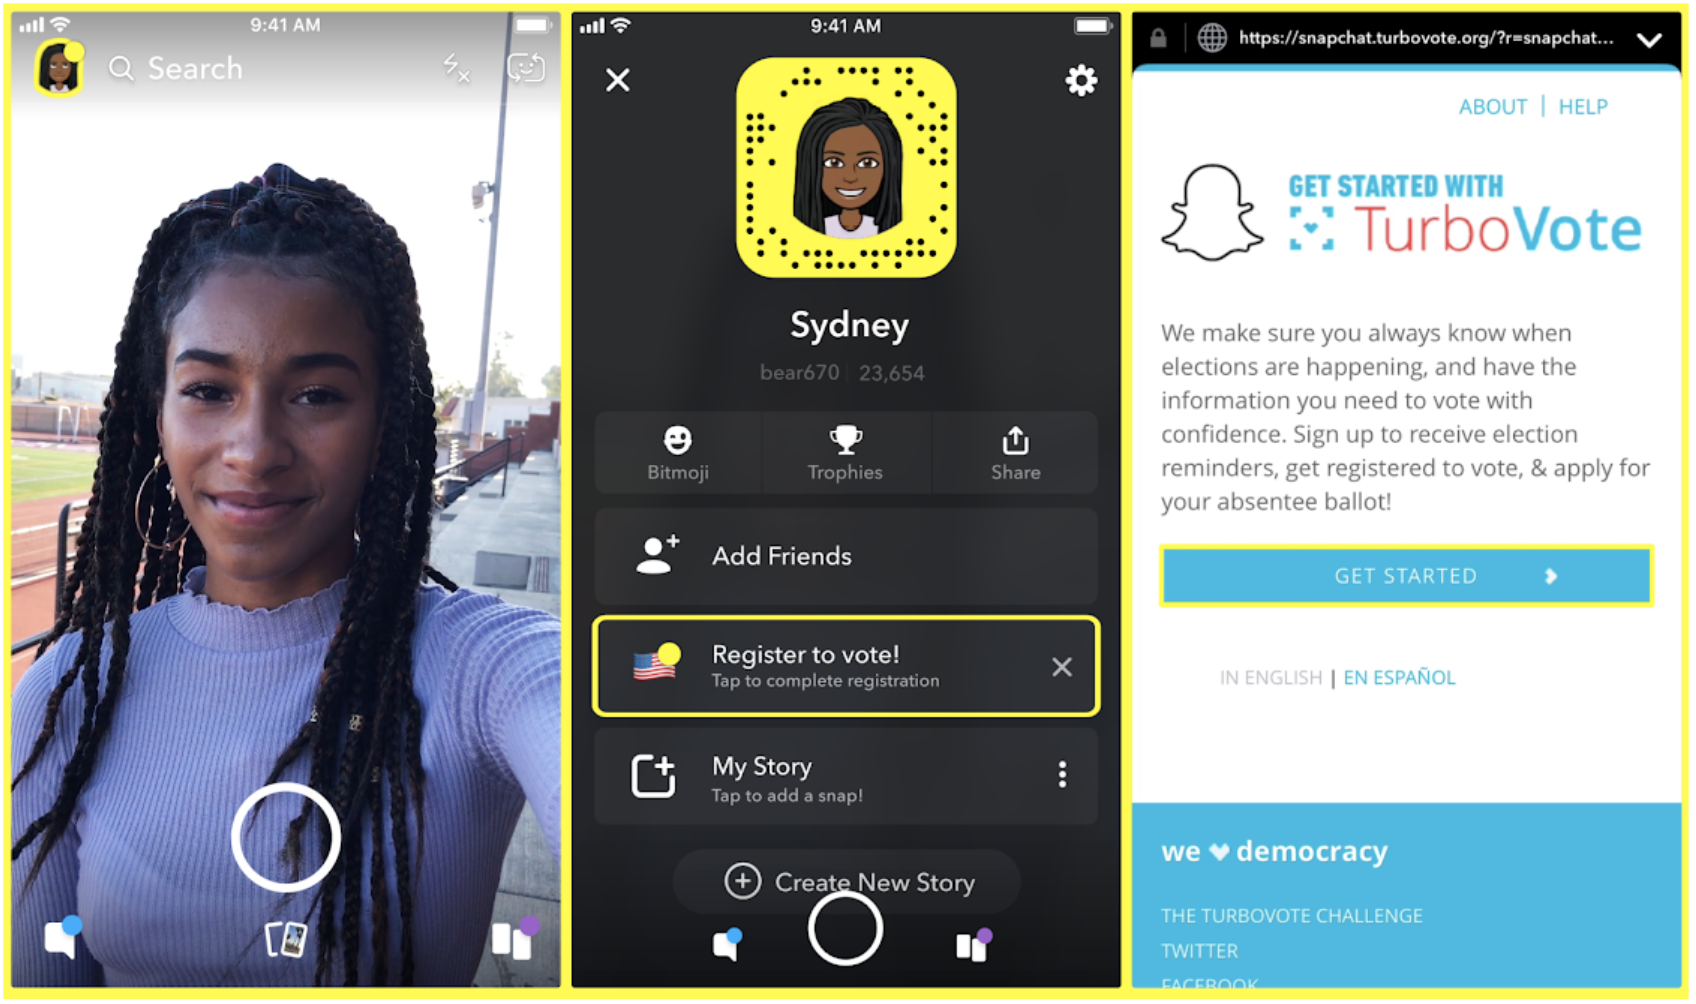 - Snapchat sent users to TurboVote via a mass snap on National Voter Registration Day and referred 1.4 million users to our site, Get to the Polls, to find their polling place during the election.